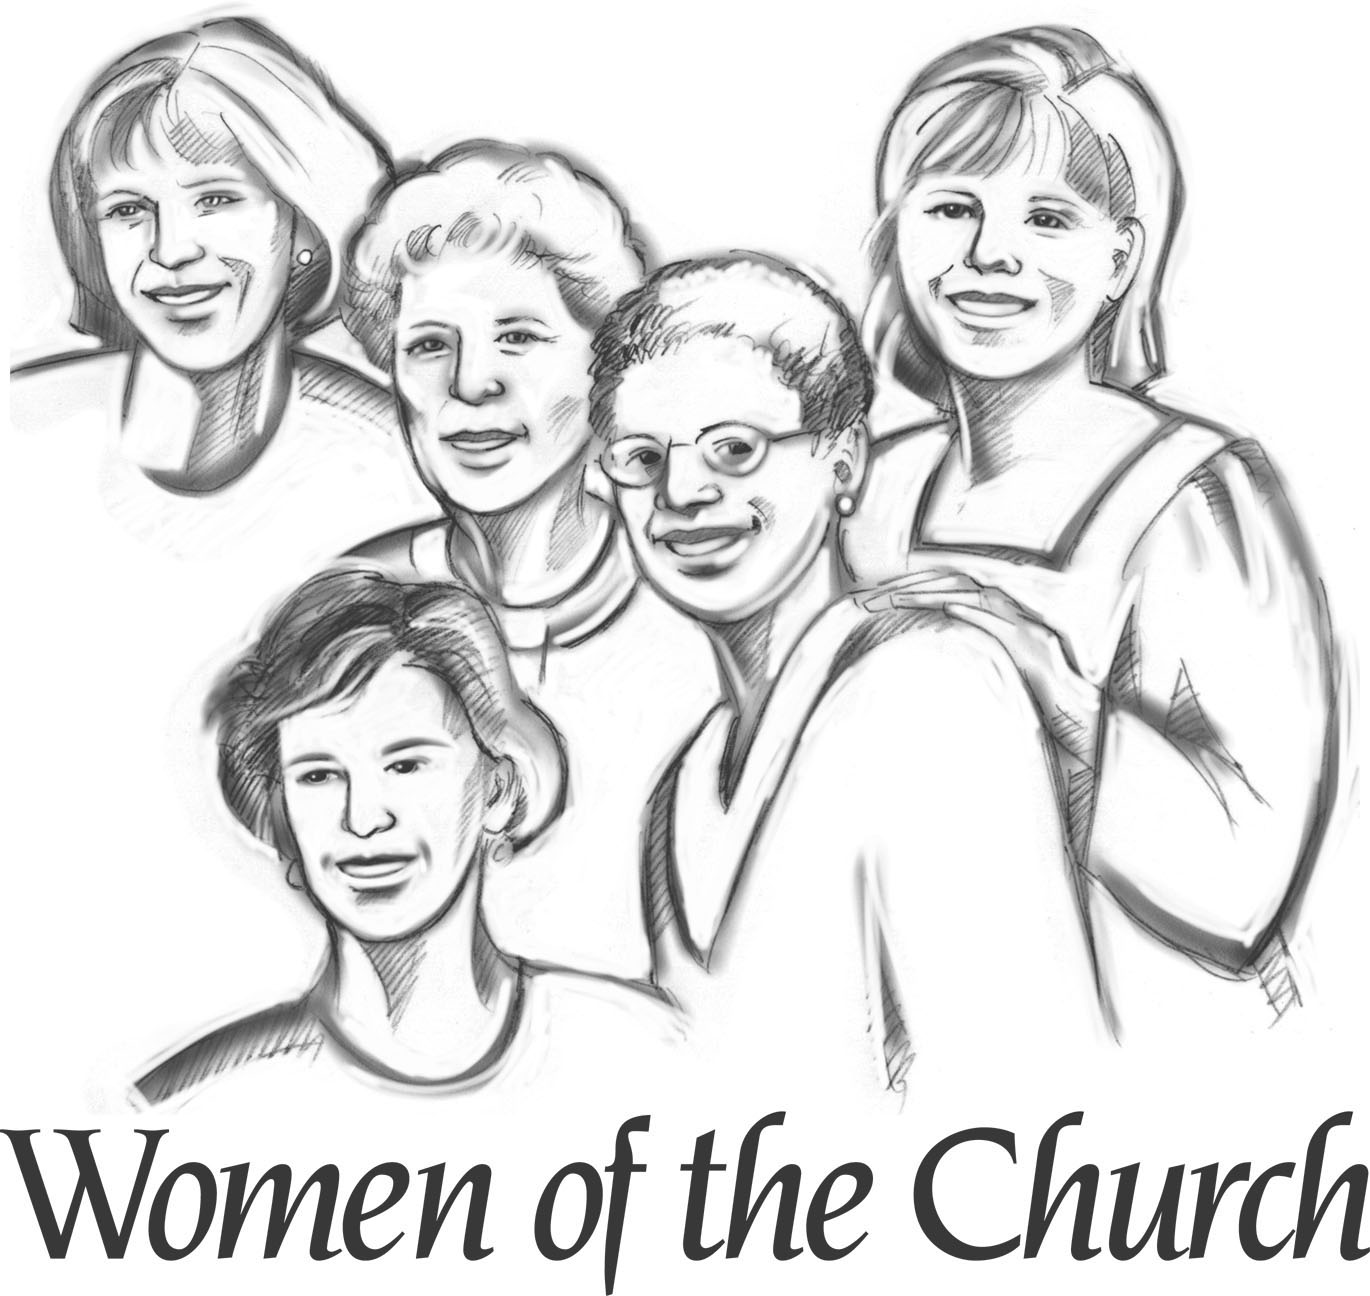 Church ladies clipart svg freeuse Free Church Women Cliparts, Download Free Clip Art, Free Clip Art on ... svg freeuse